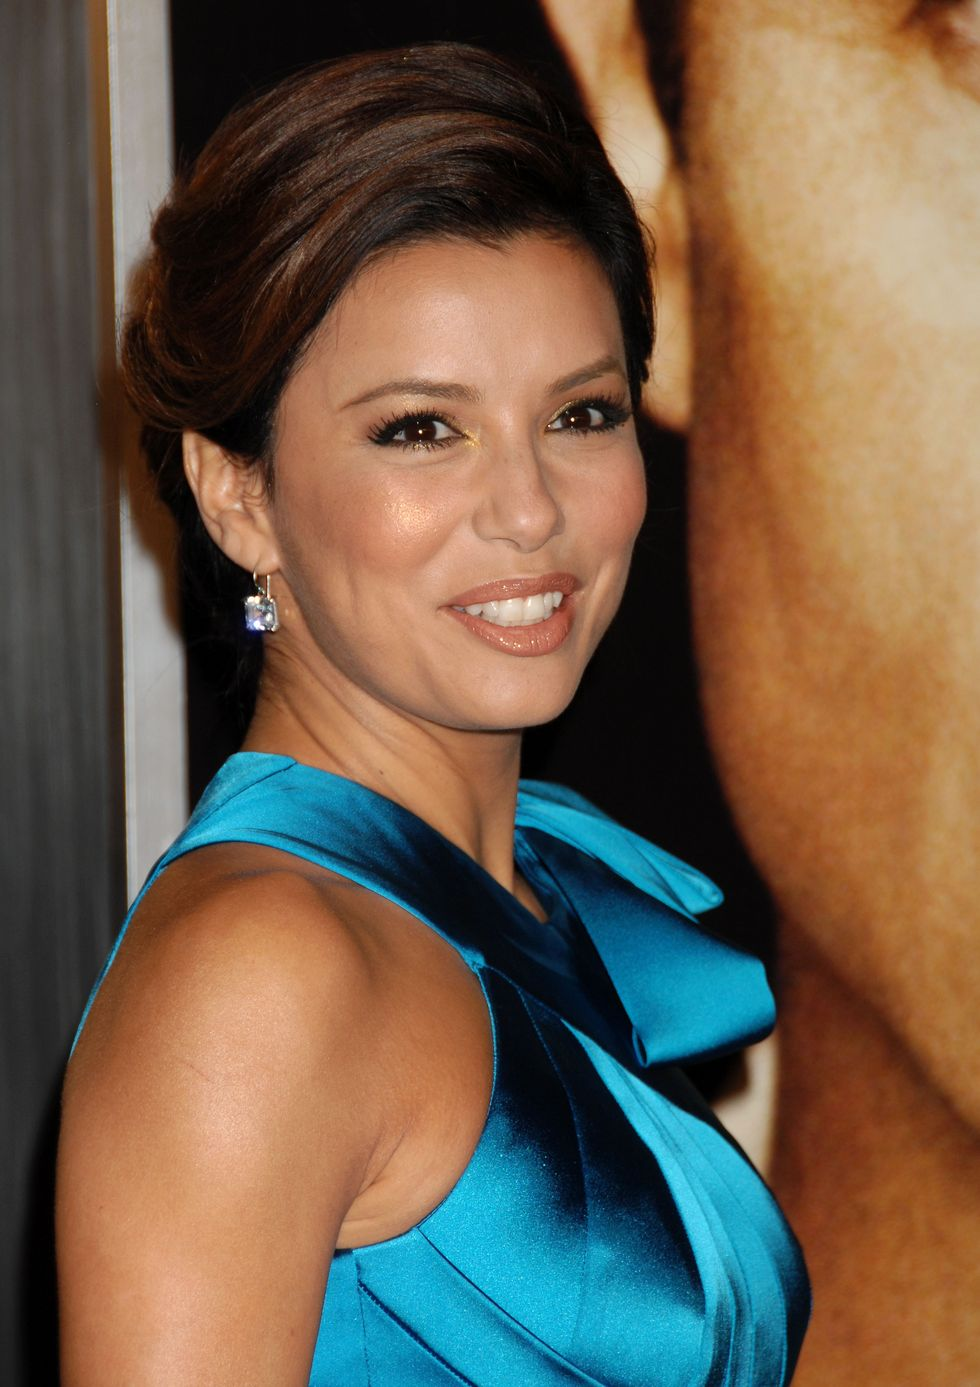 eva-longoria-the-curious-case-of-benjamin-button-premiere-in-los-angeles-01